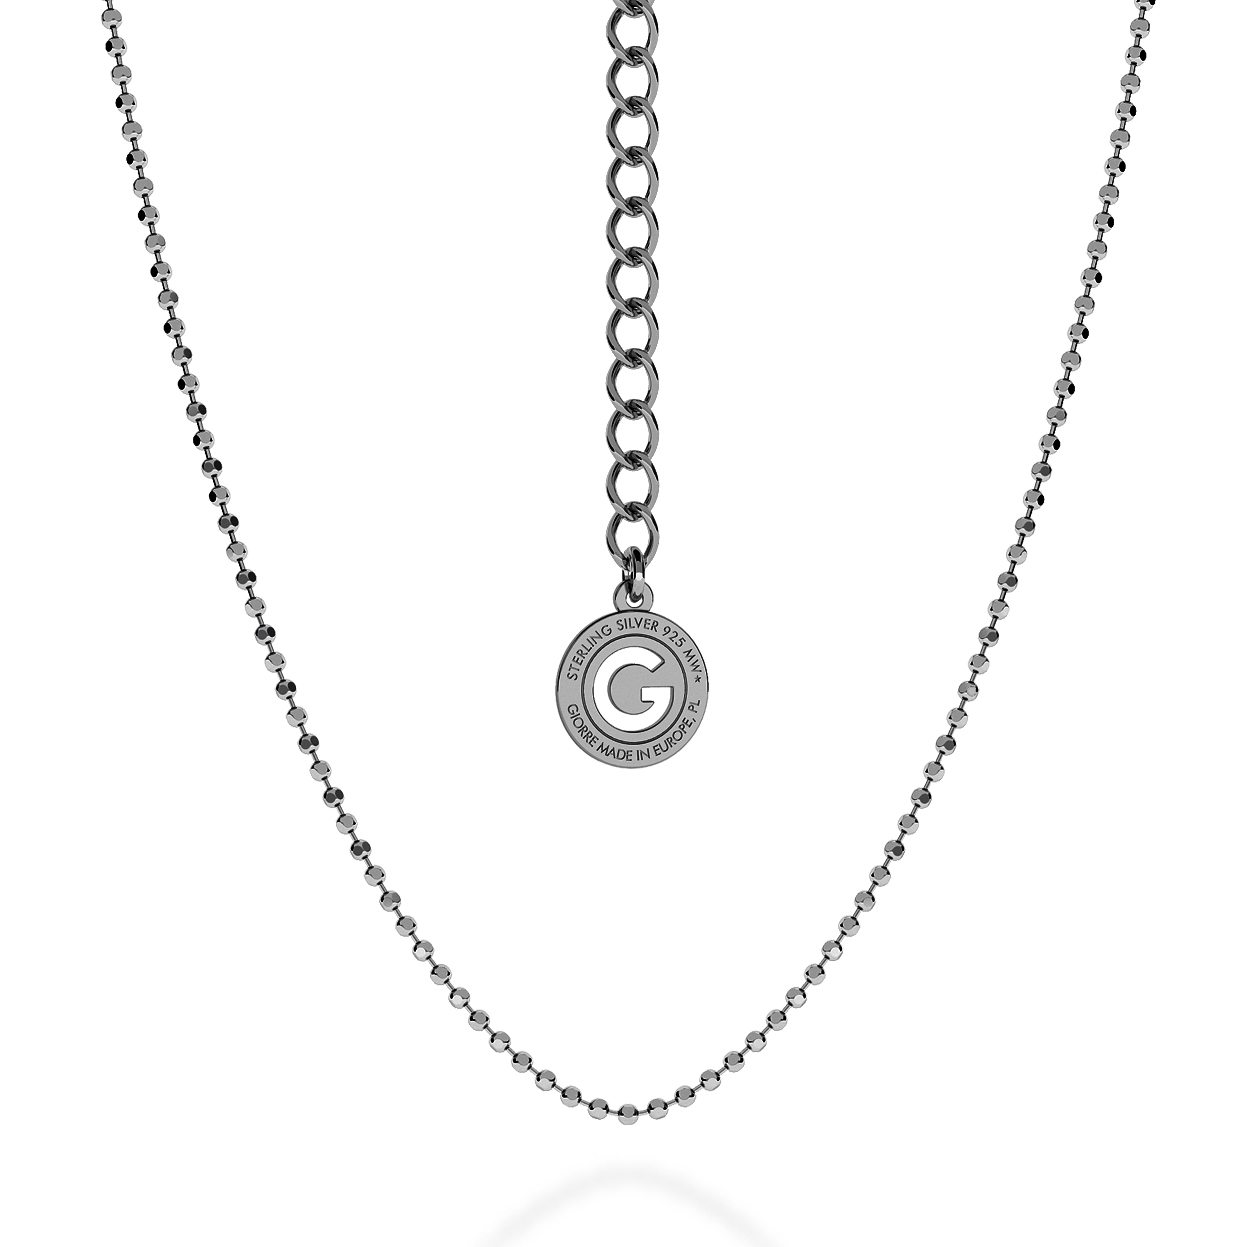 SILVER NECKLACE WITH BALLS 55 CM, RHODIUM PLATED (BLACK RHODIUM)